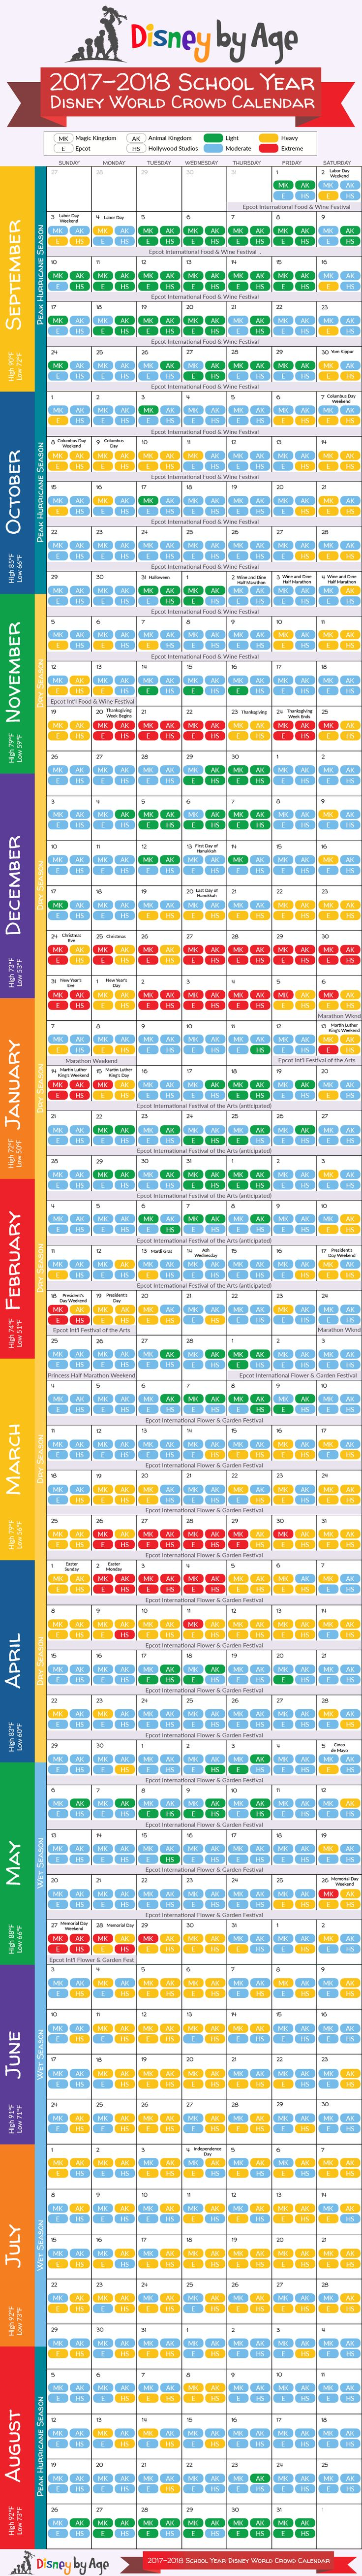 Our 2017-2018 school year Disney World Crowd Calendar has all the information you need to plan your Disney trip!